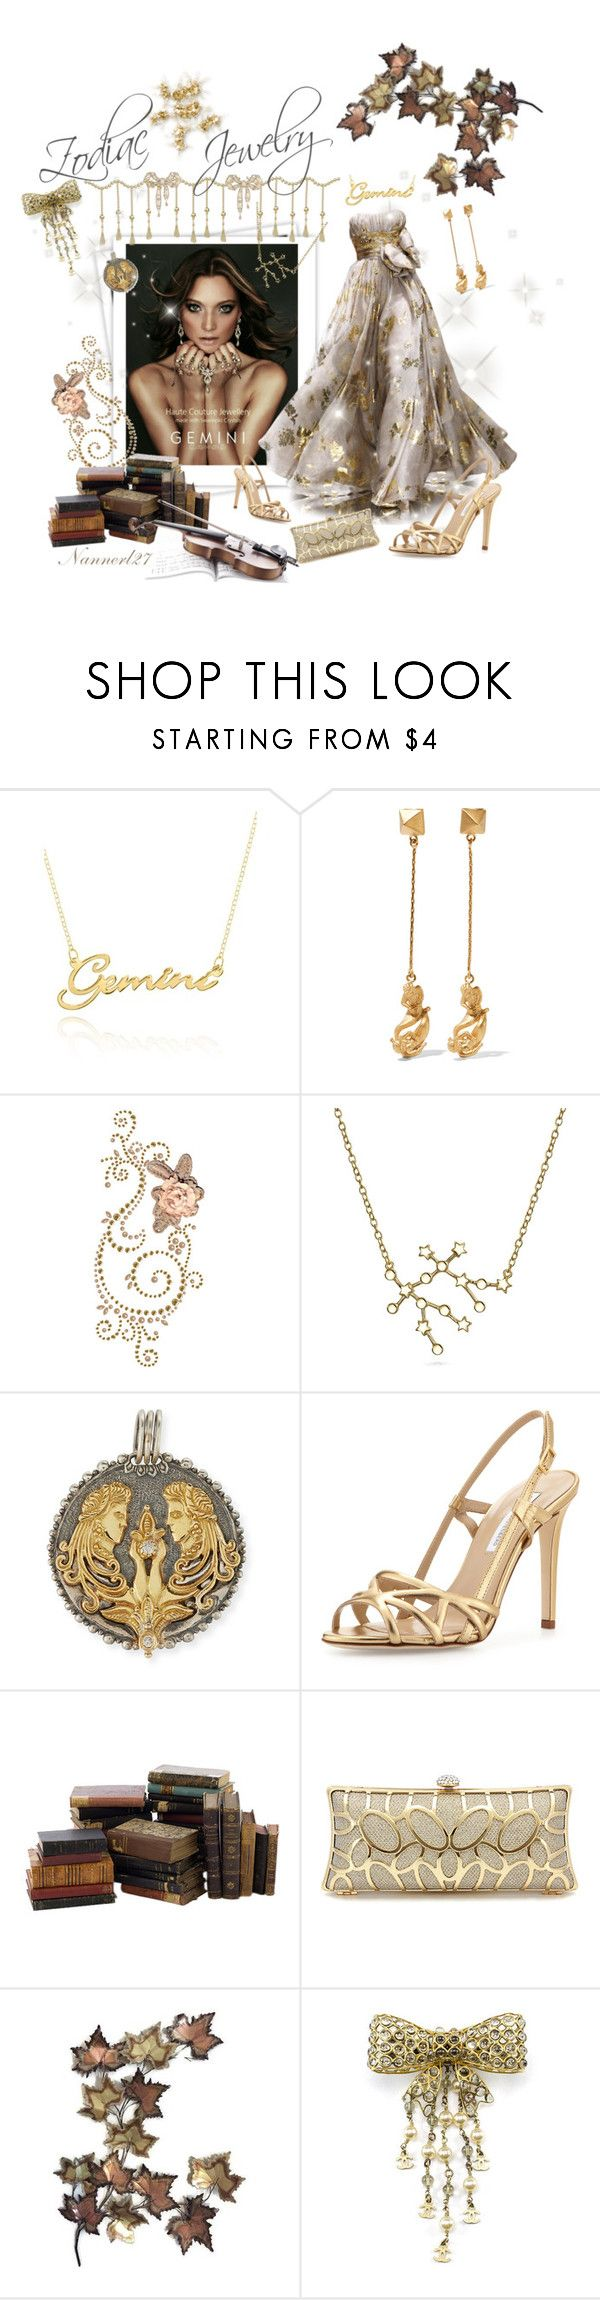 """""""Gemini for ever..."""" by nannerl27forever ❤ liked on Polyvore featuring GALA, Zuhair Murad, Belk & Co., Valentino, Bling Jewelry, Konstantino, Diane Von Furstenberg and Chanel"""